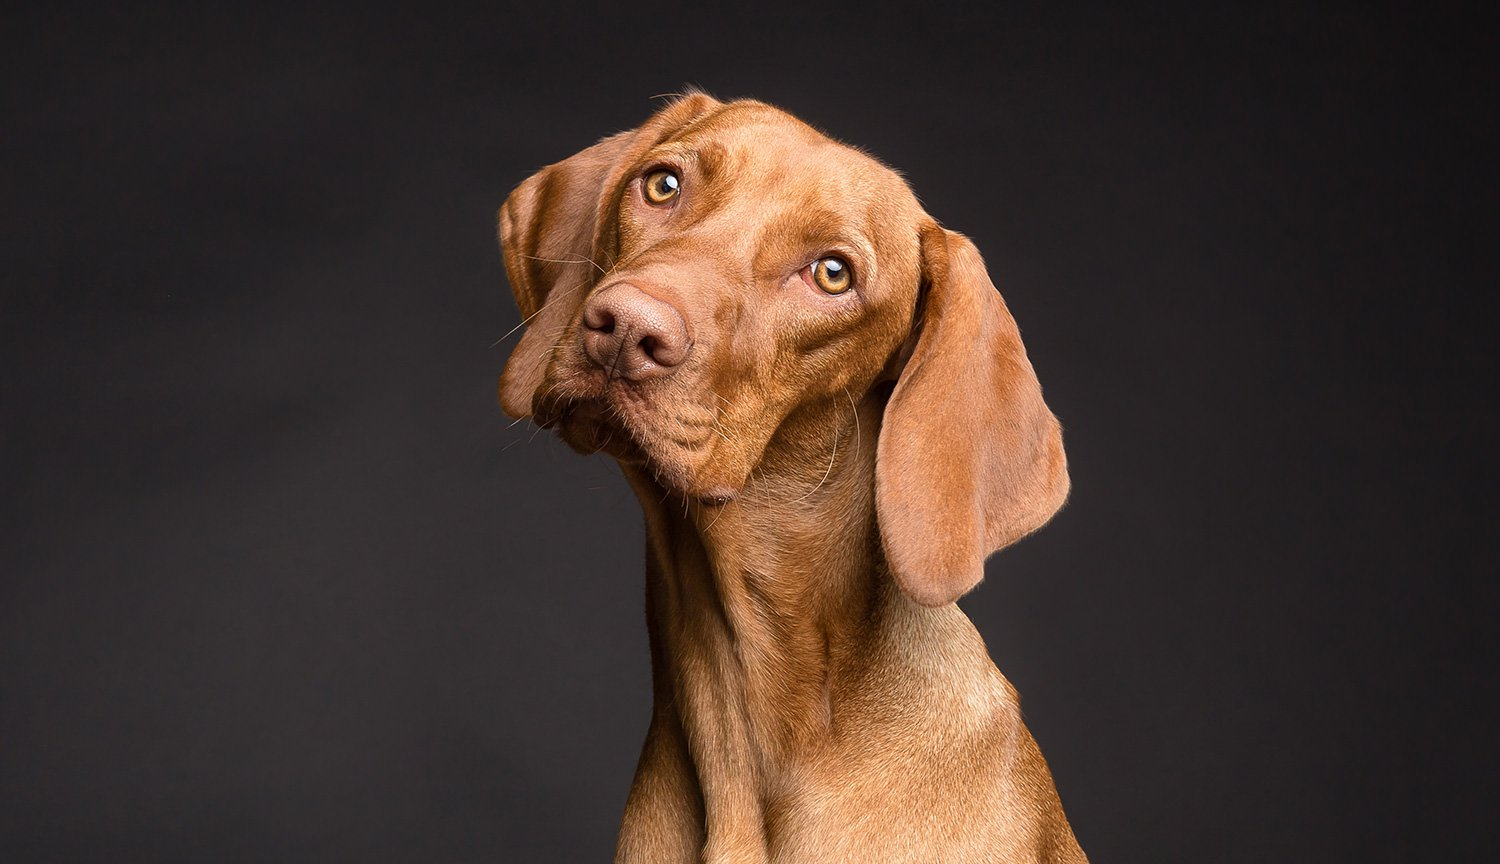 Imaging proved that dogs really do understand human speech